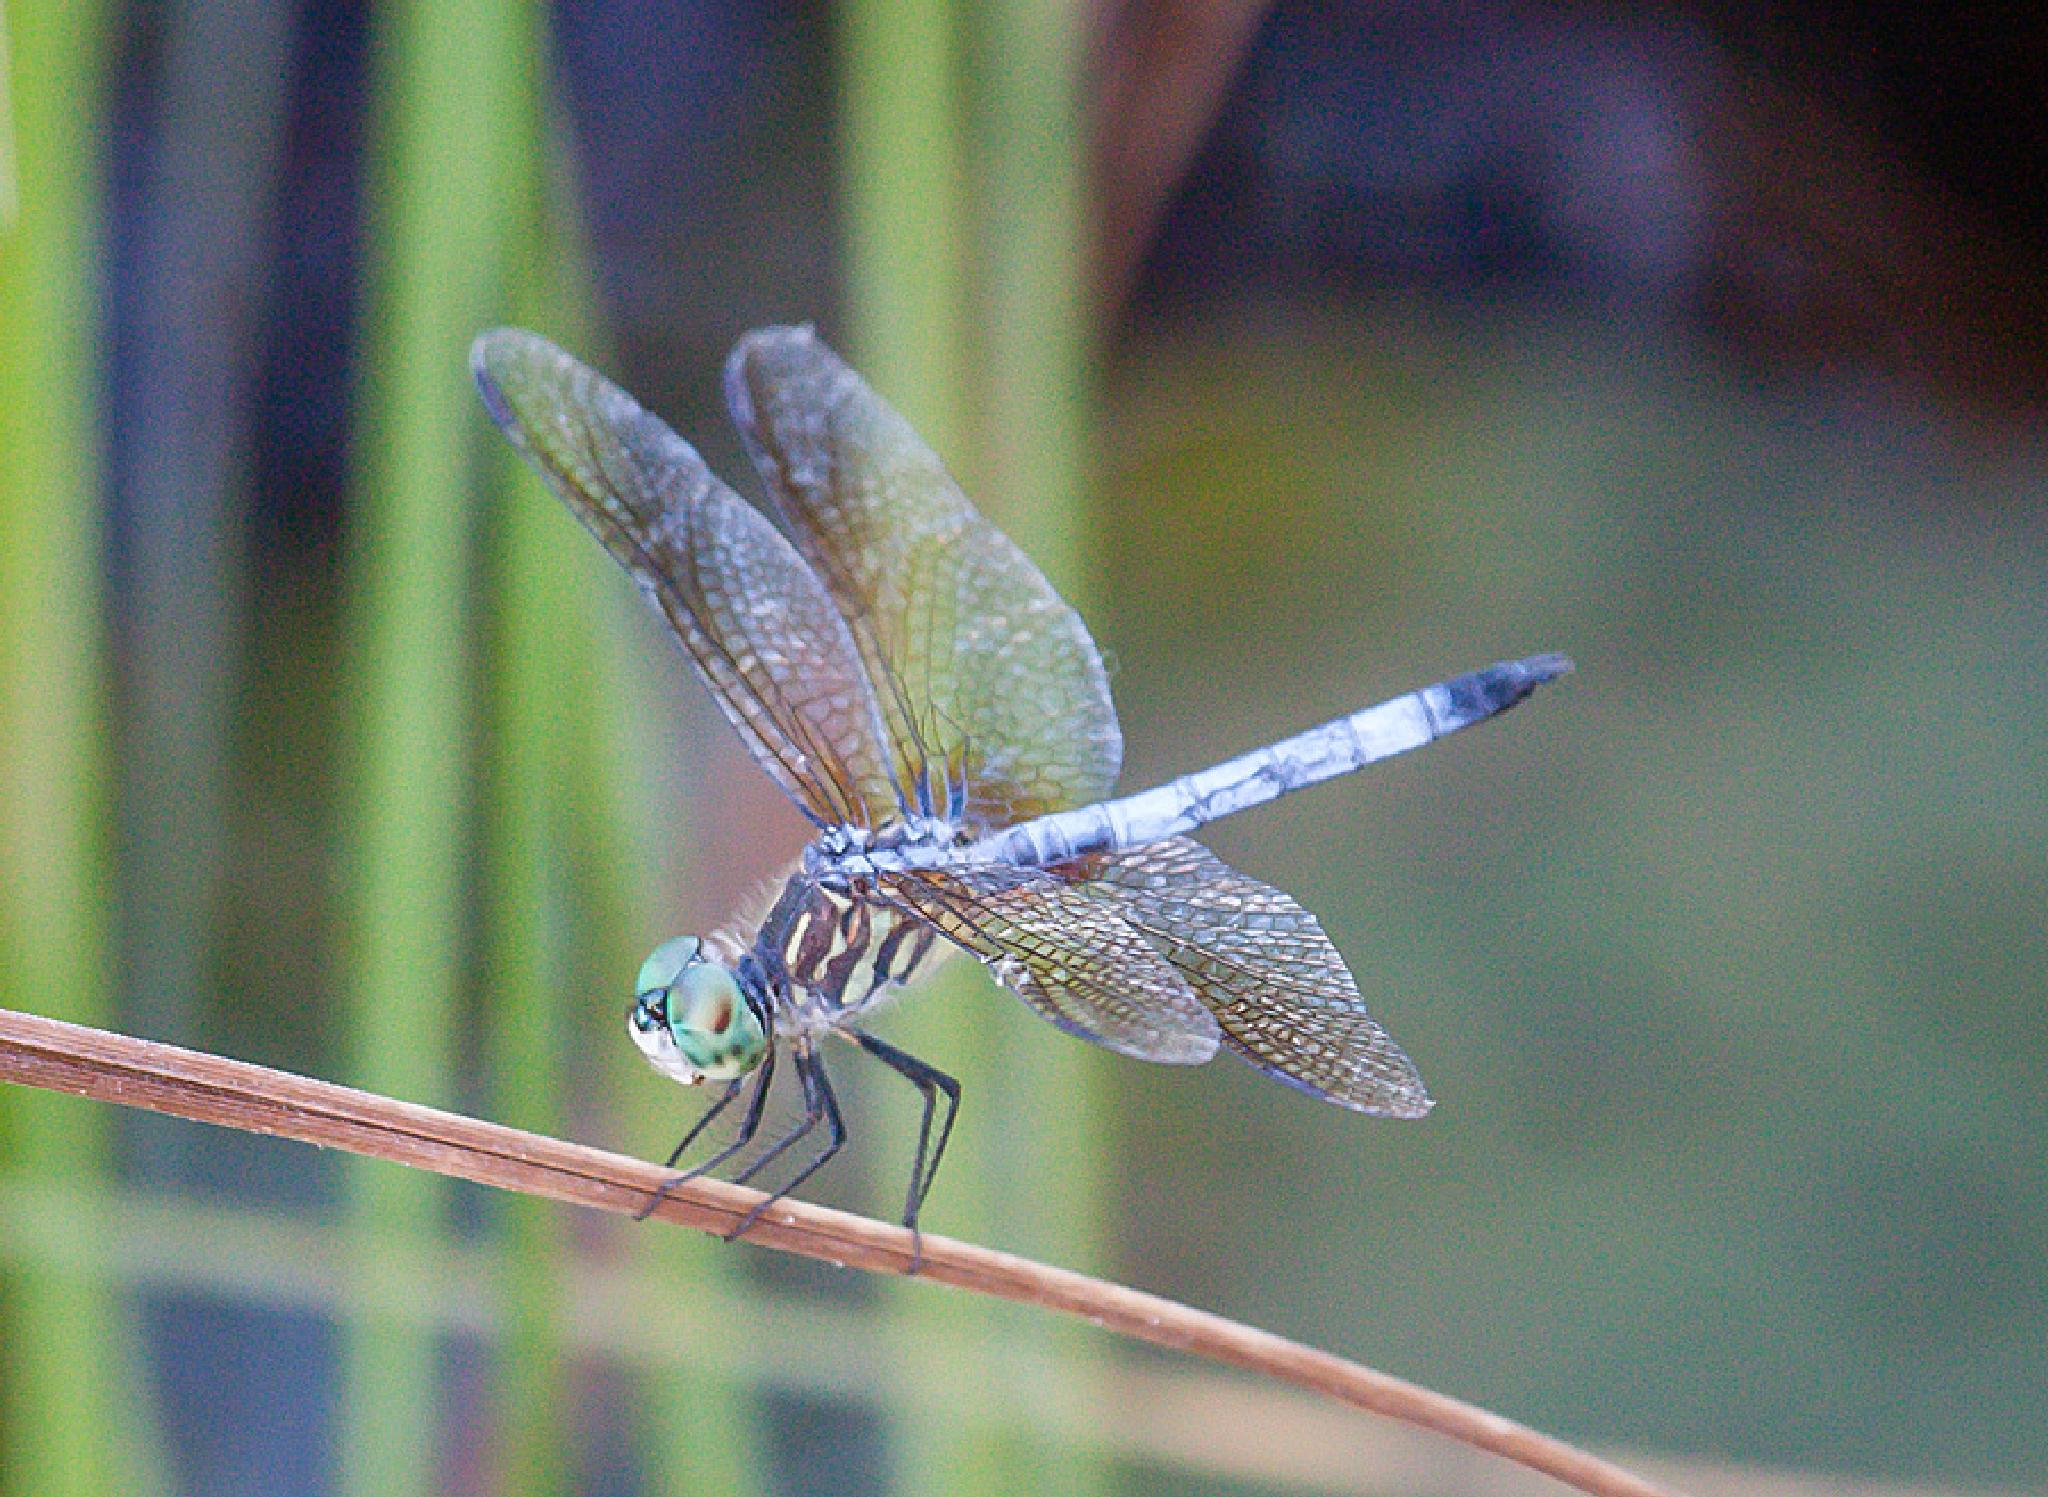 Dragonfly by blee